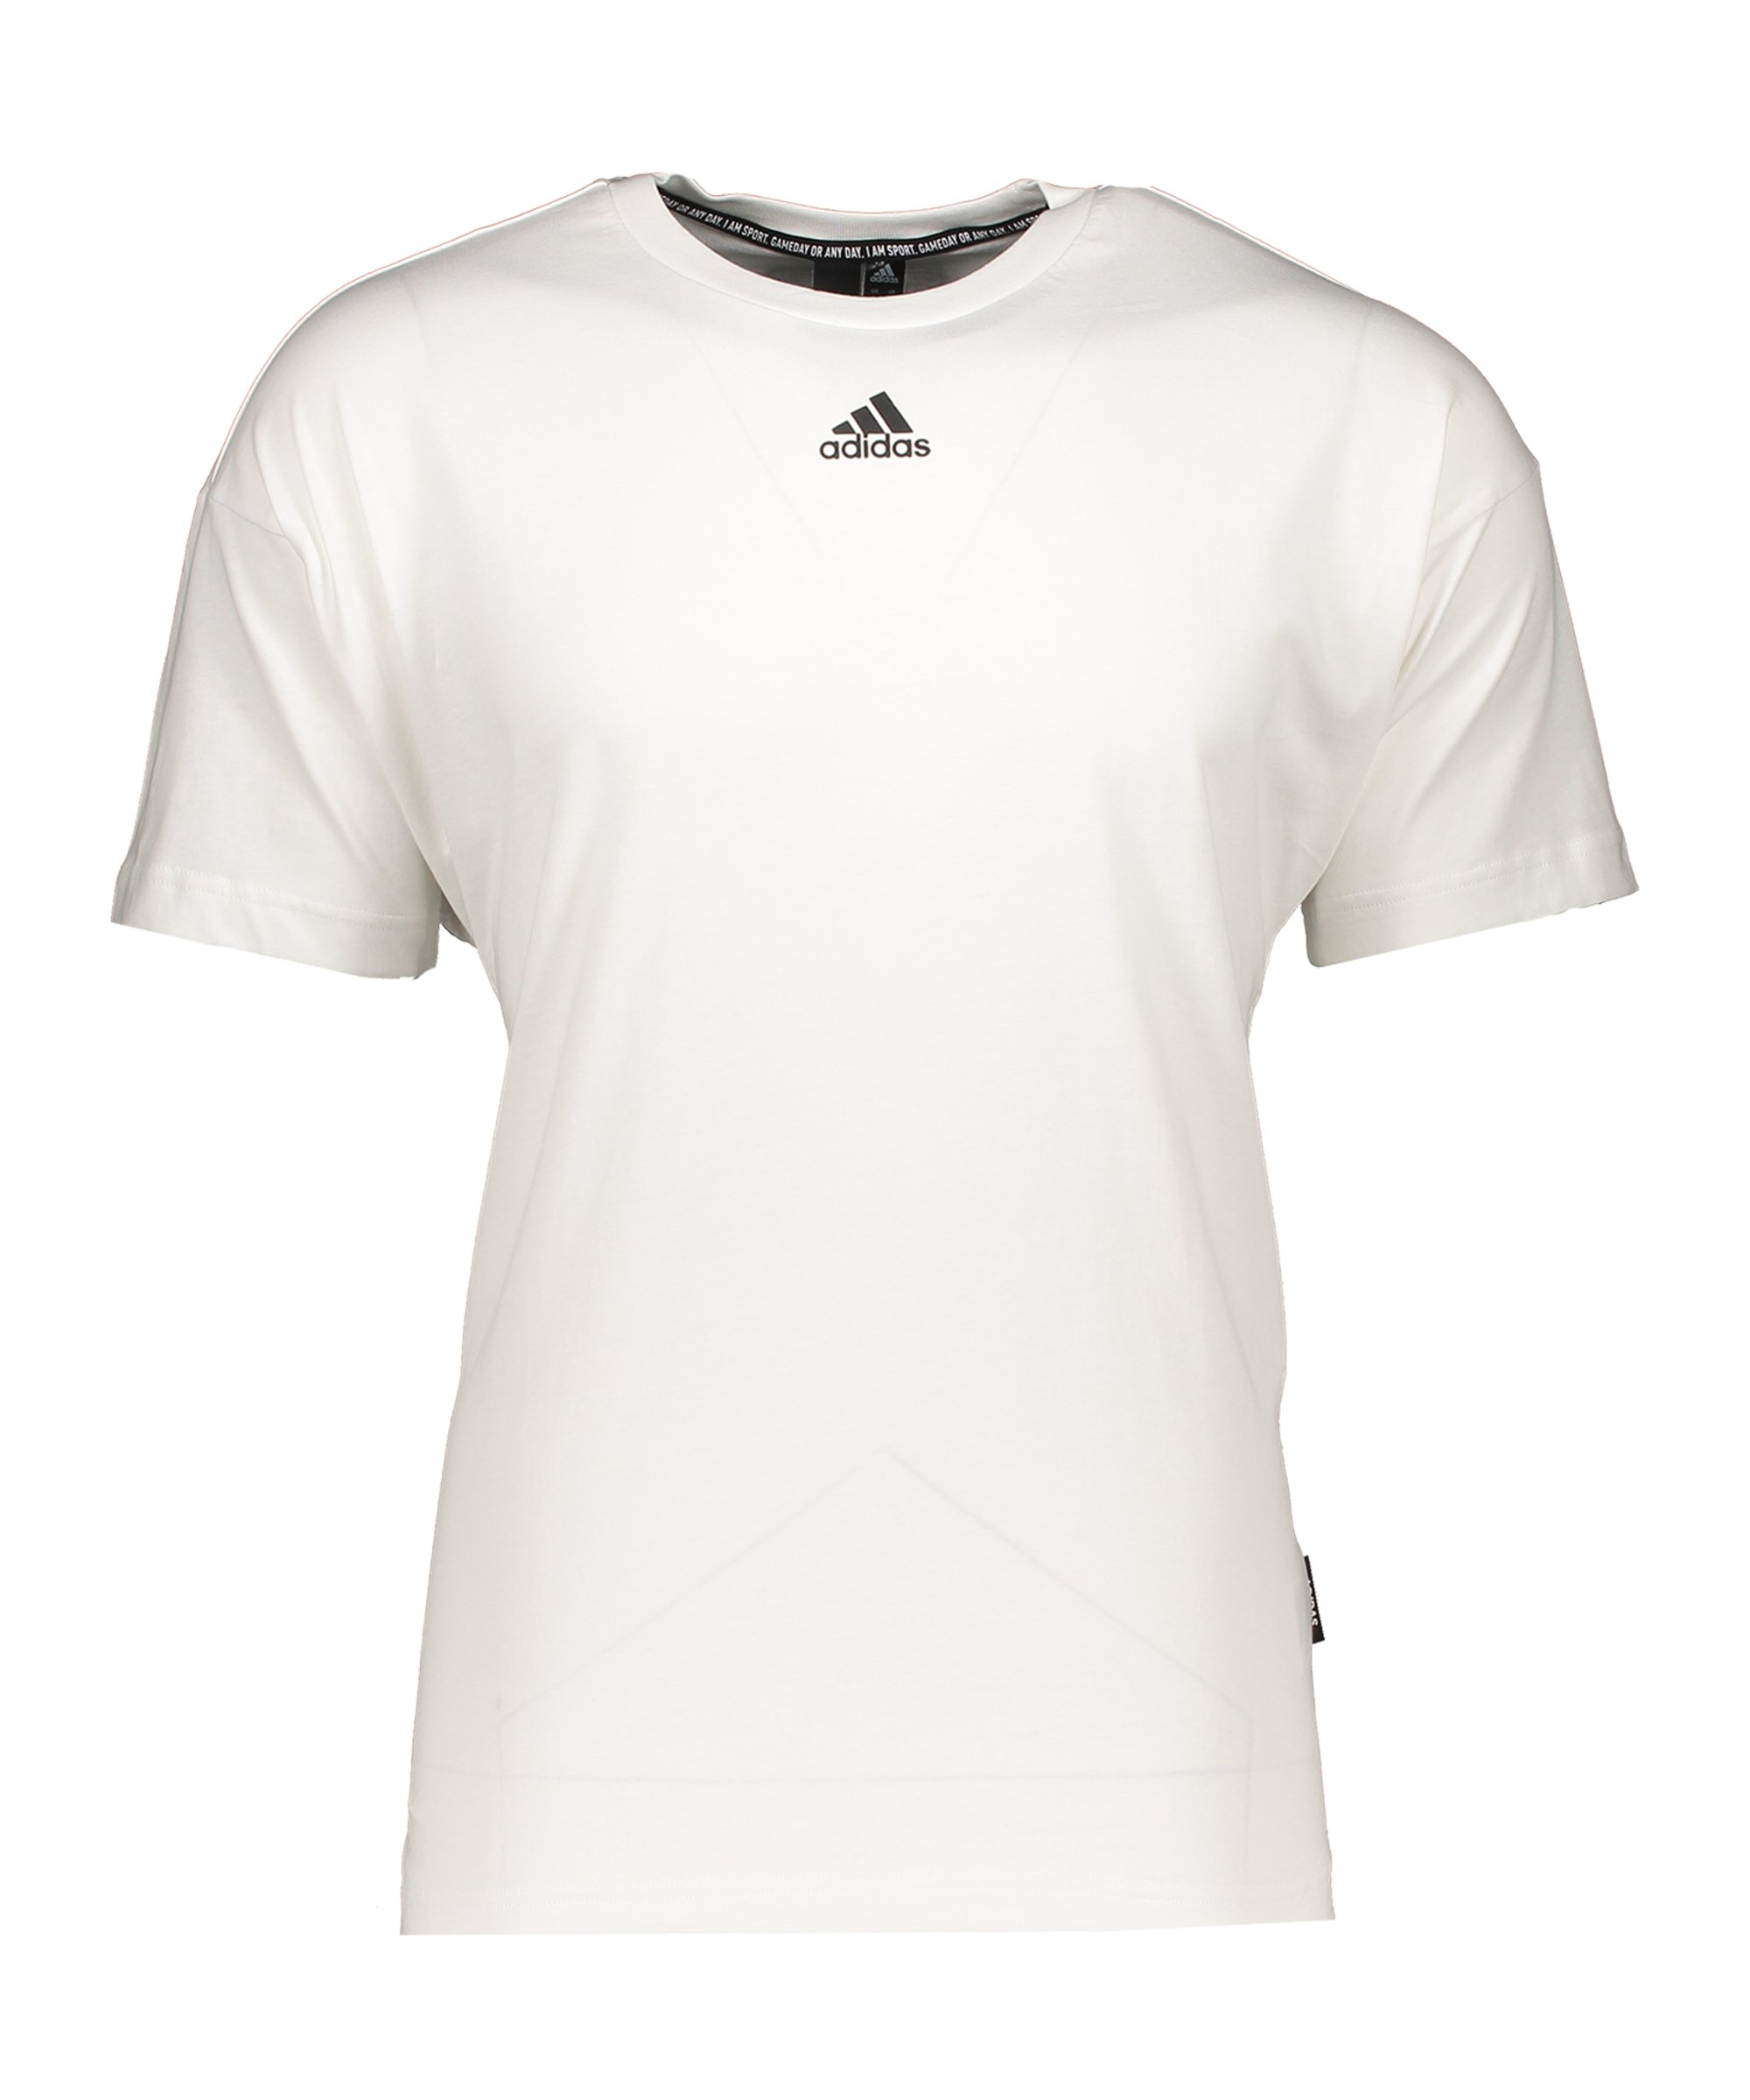 adidas Must Haves 3 Stripes T-Shirt Weiss - weiss